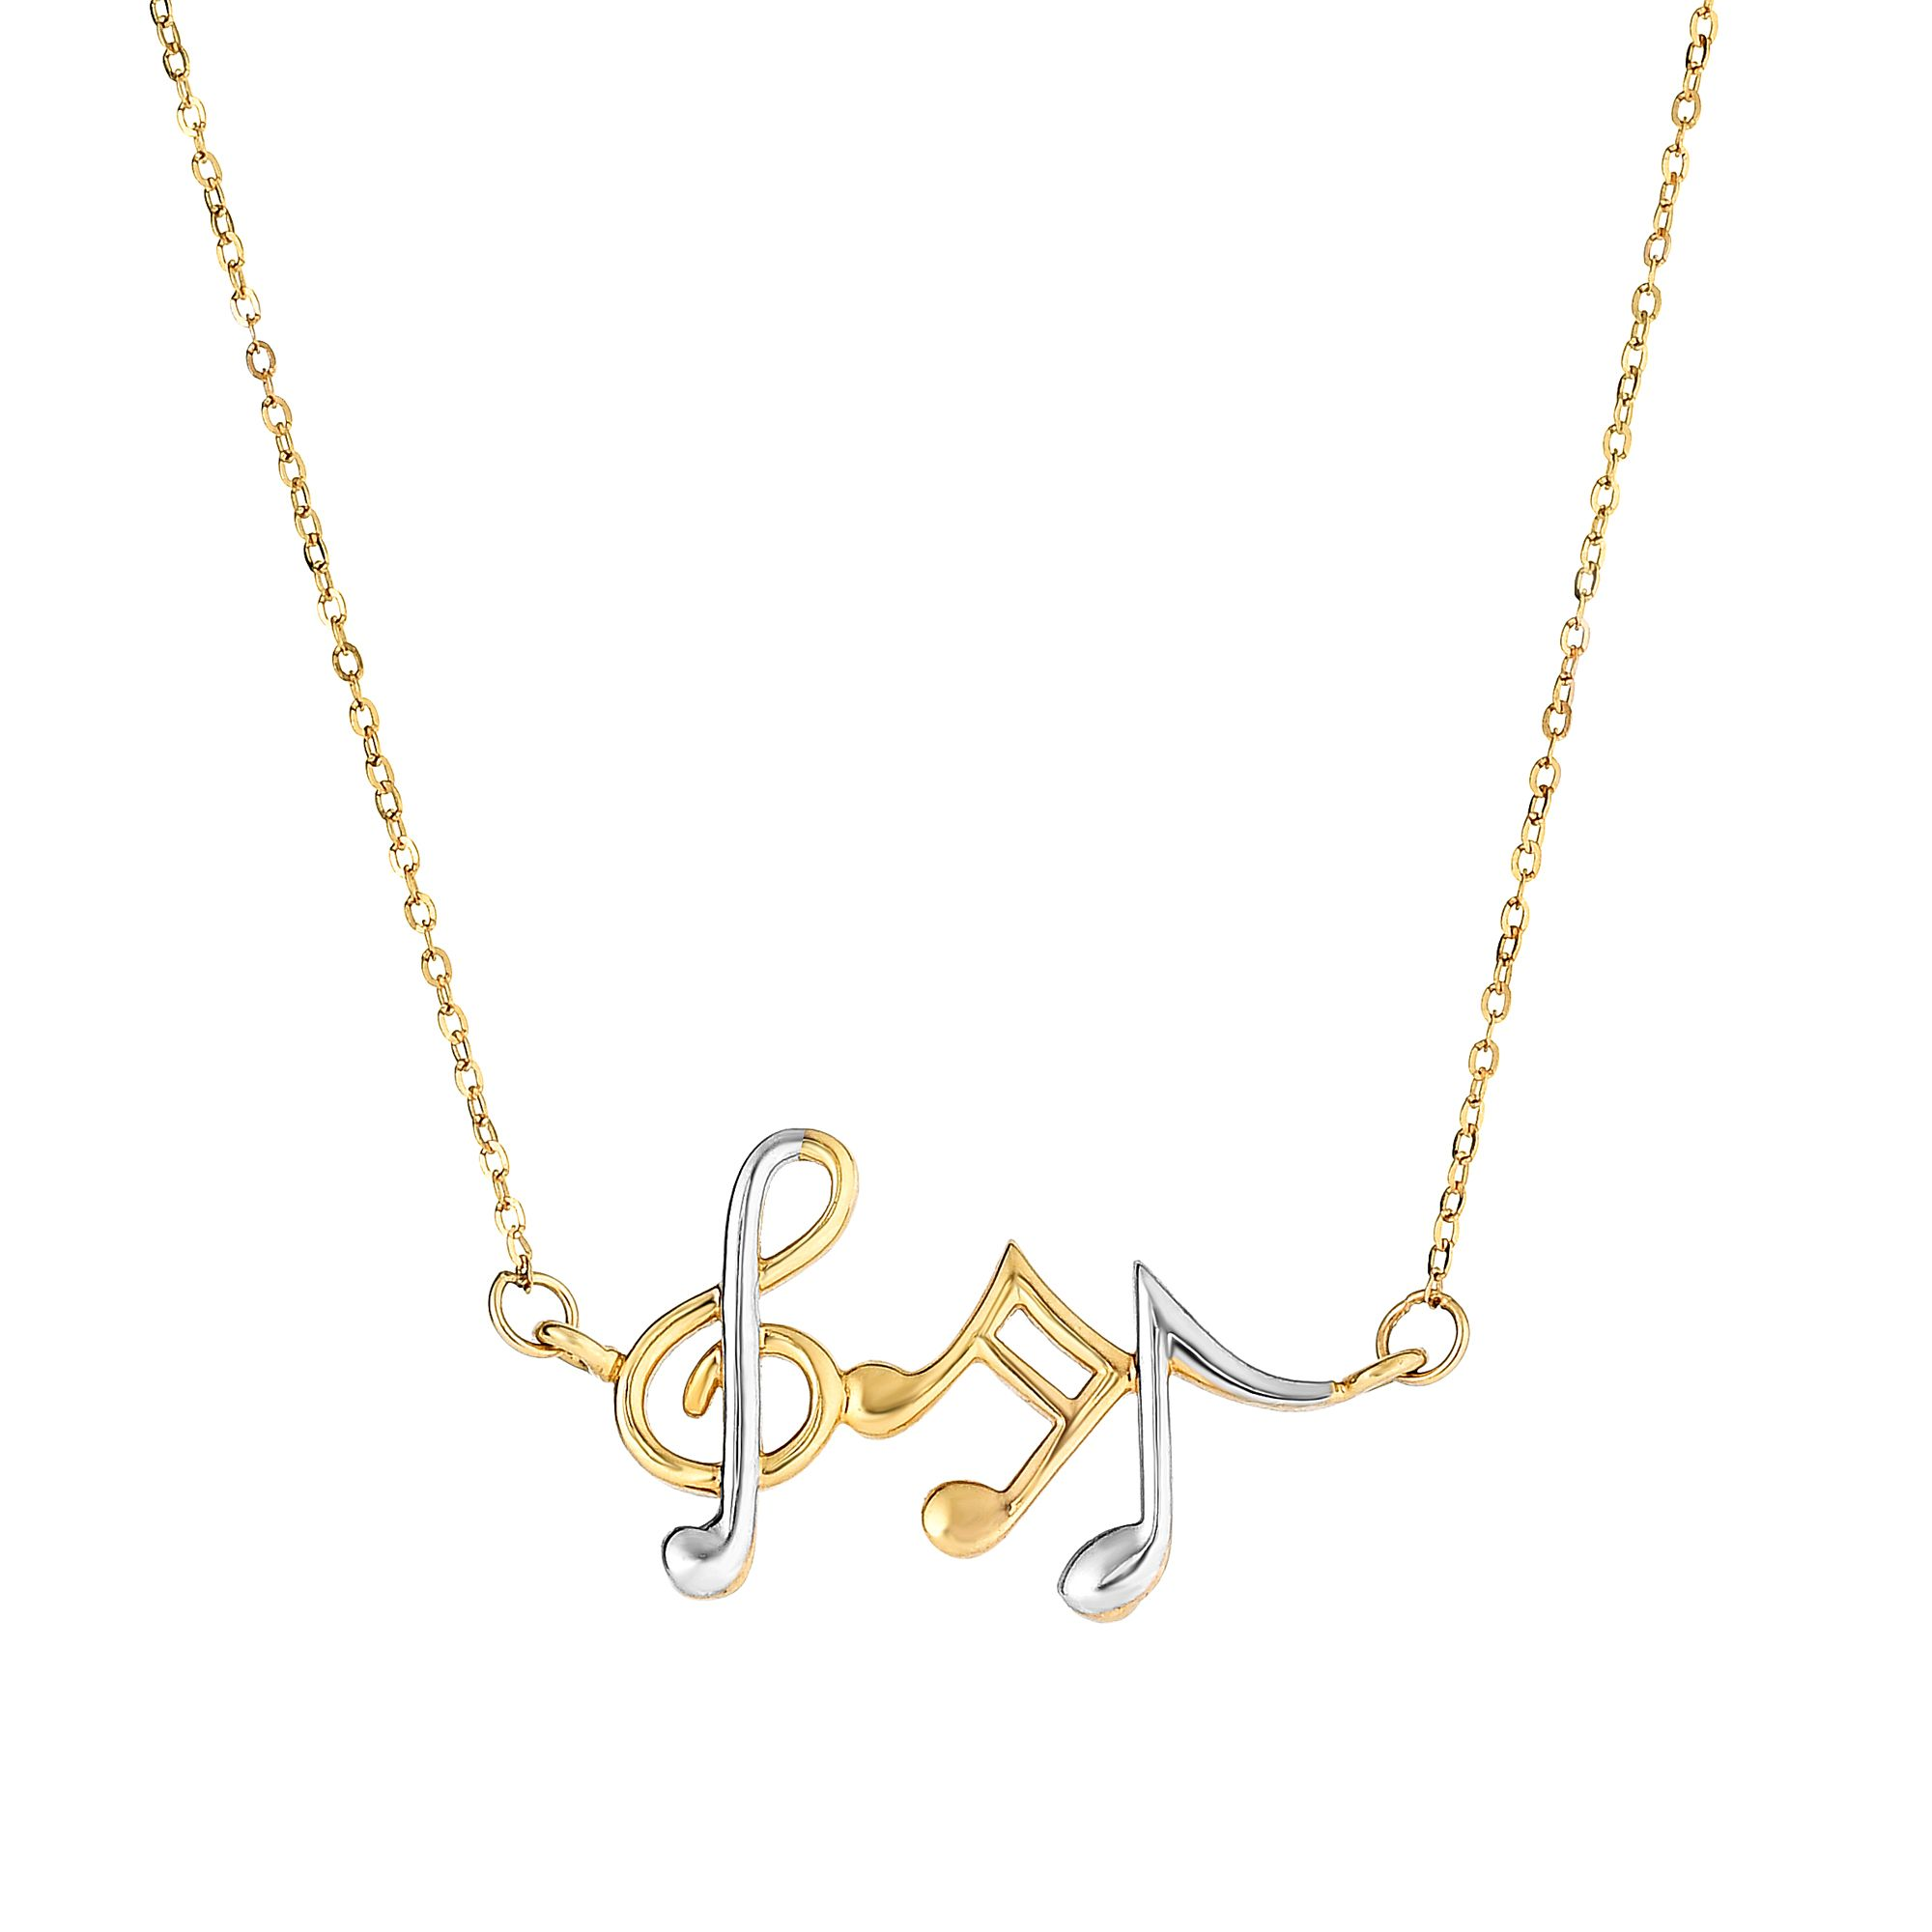 14k Two Tone Gold Musical Notes Necklace Anchored to Link Chain by JewelStop